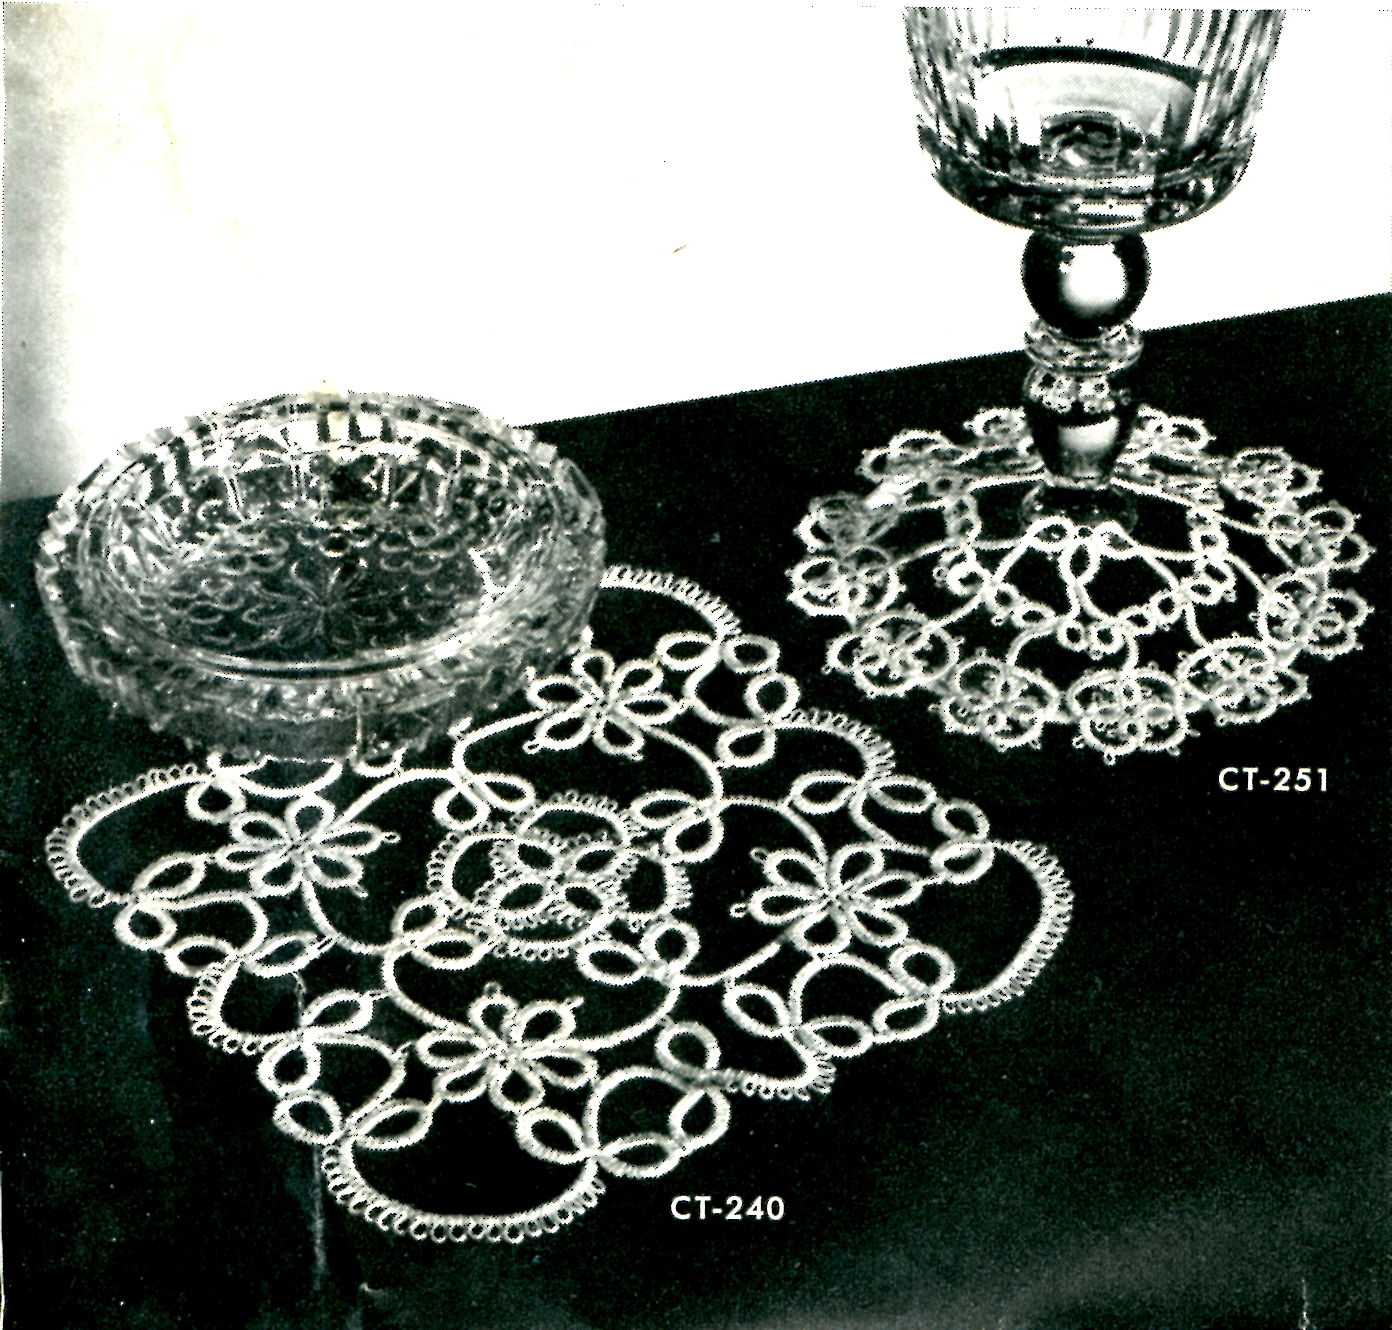 ... Cotton Company booklet dated 1949, called Fine Crochet and Tatting